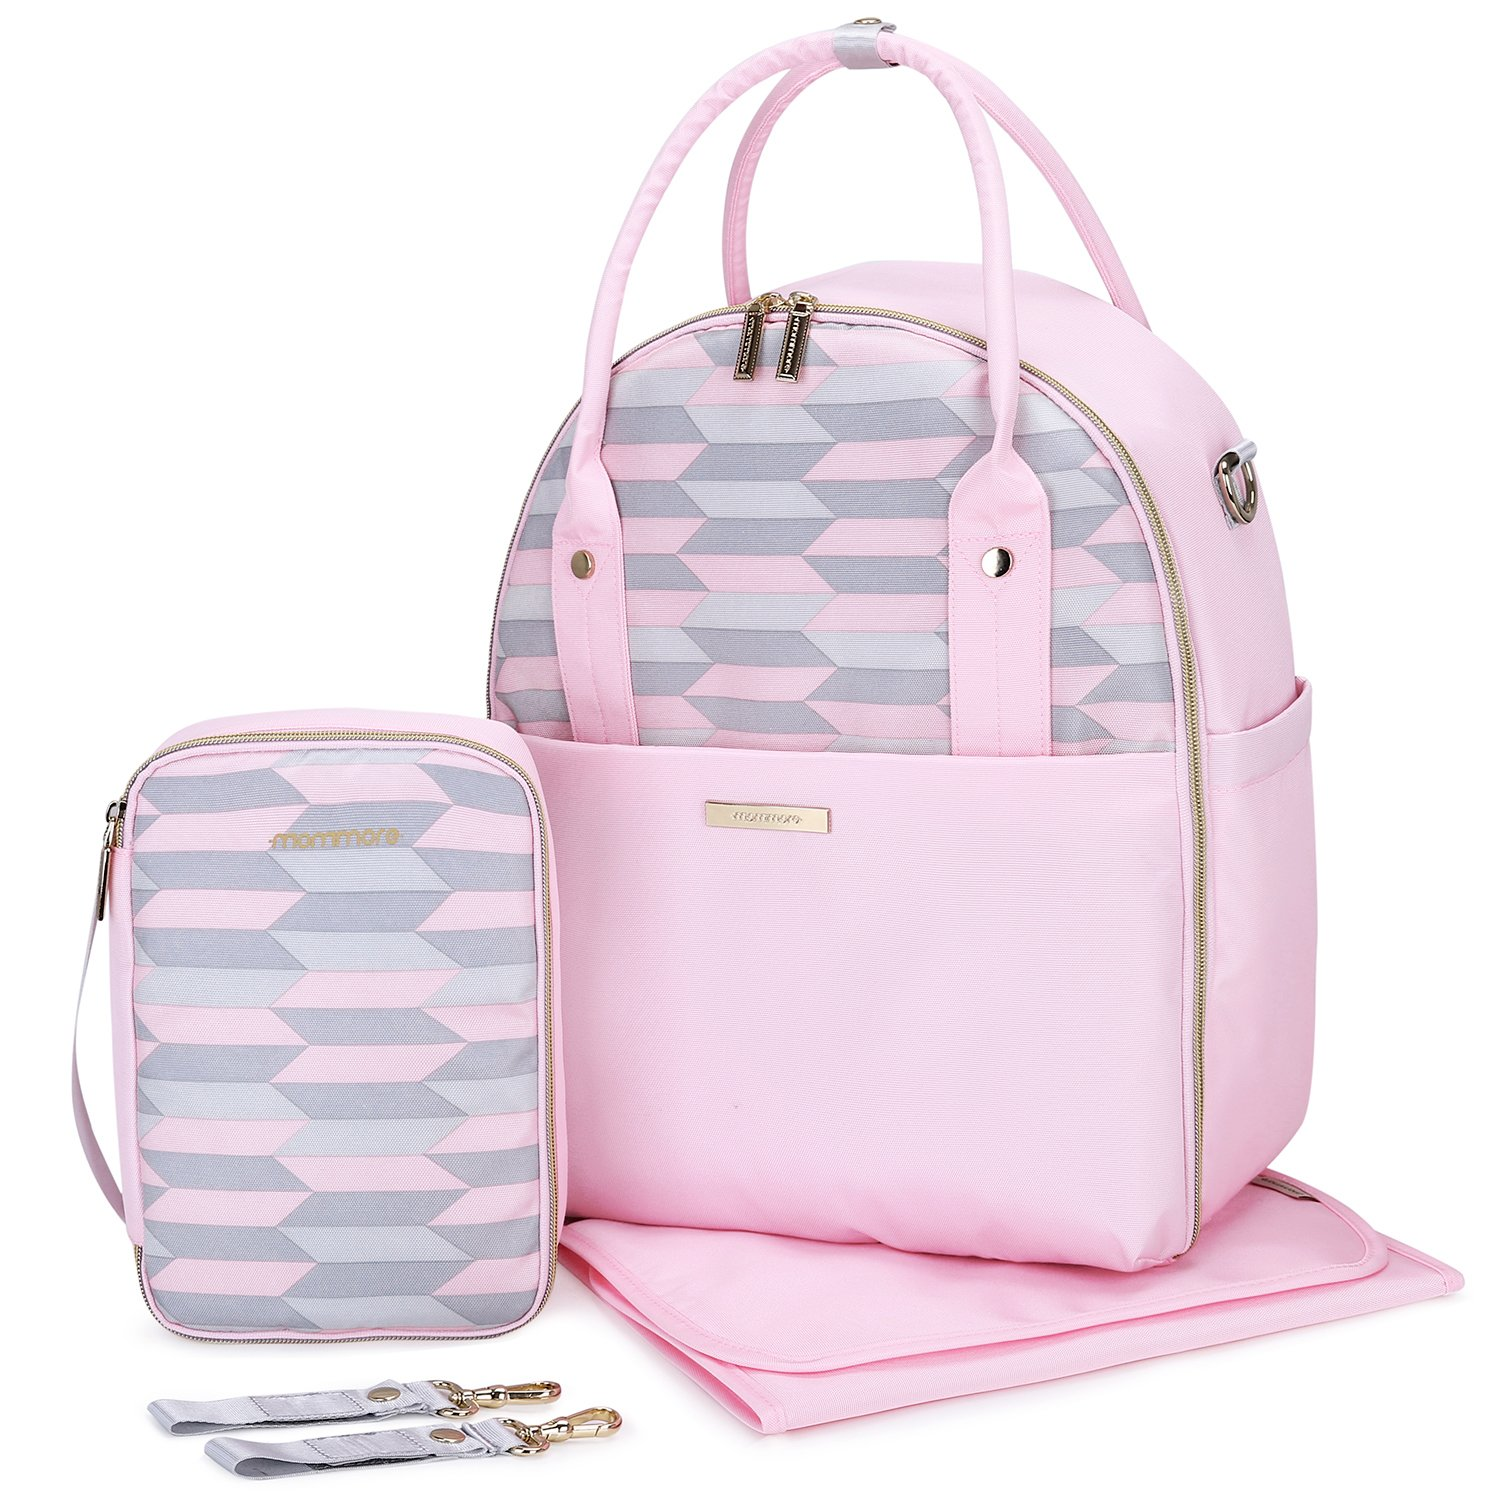 Top 5 Best Diaper Bags In 2018 That You Need To Have 3